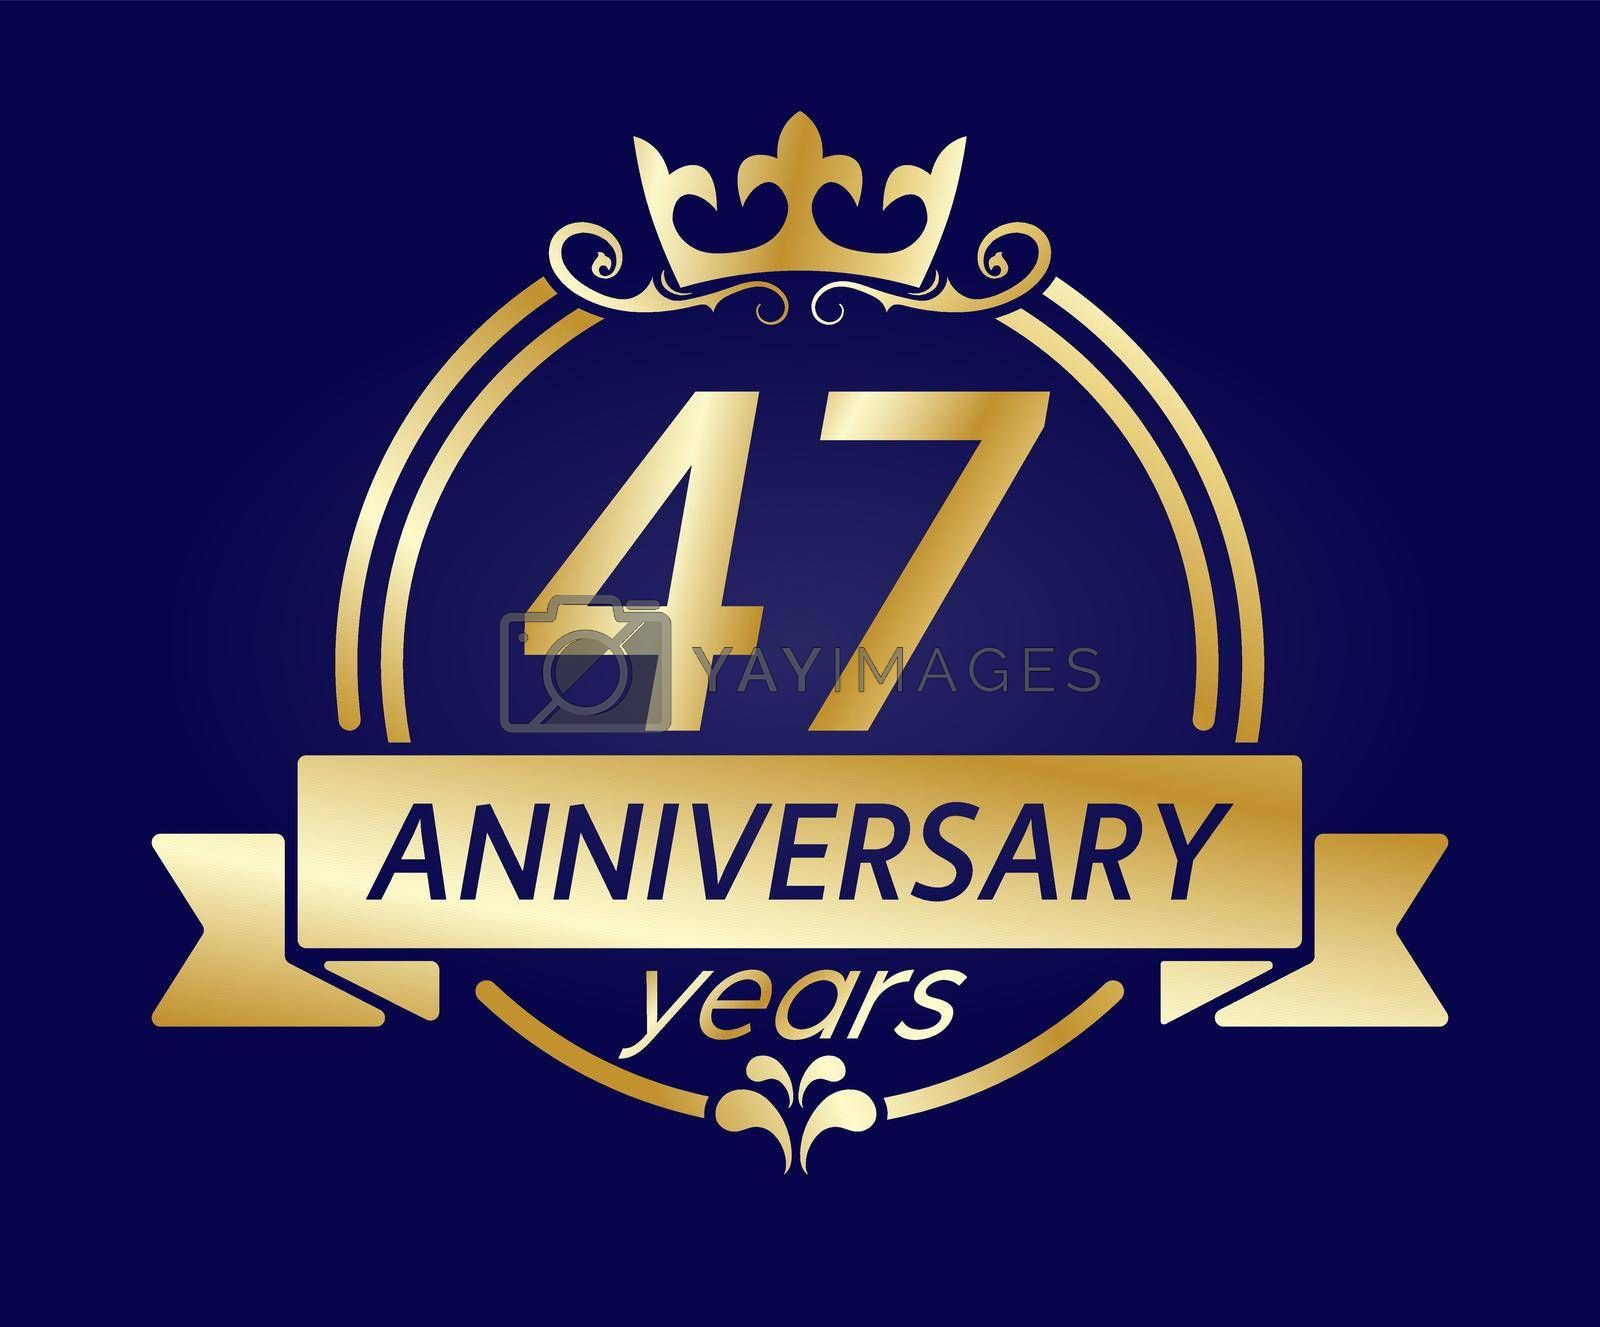 Royalty free image of 47 year anniversary. Gold round frame with crown and ribbon. Vector illustration for birthday, wedding or anniversary greetings, for creative design by Grommik